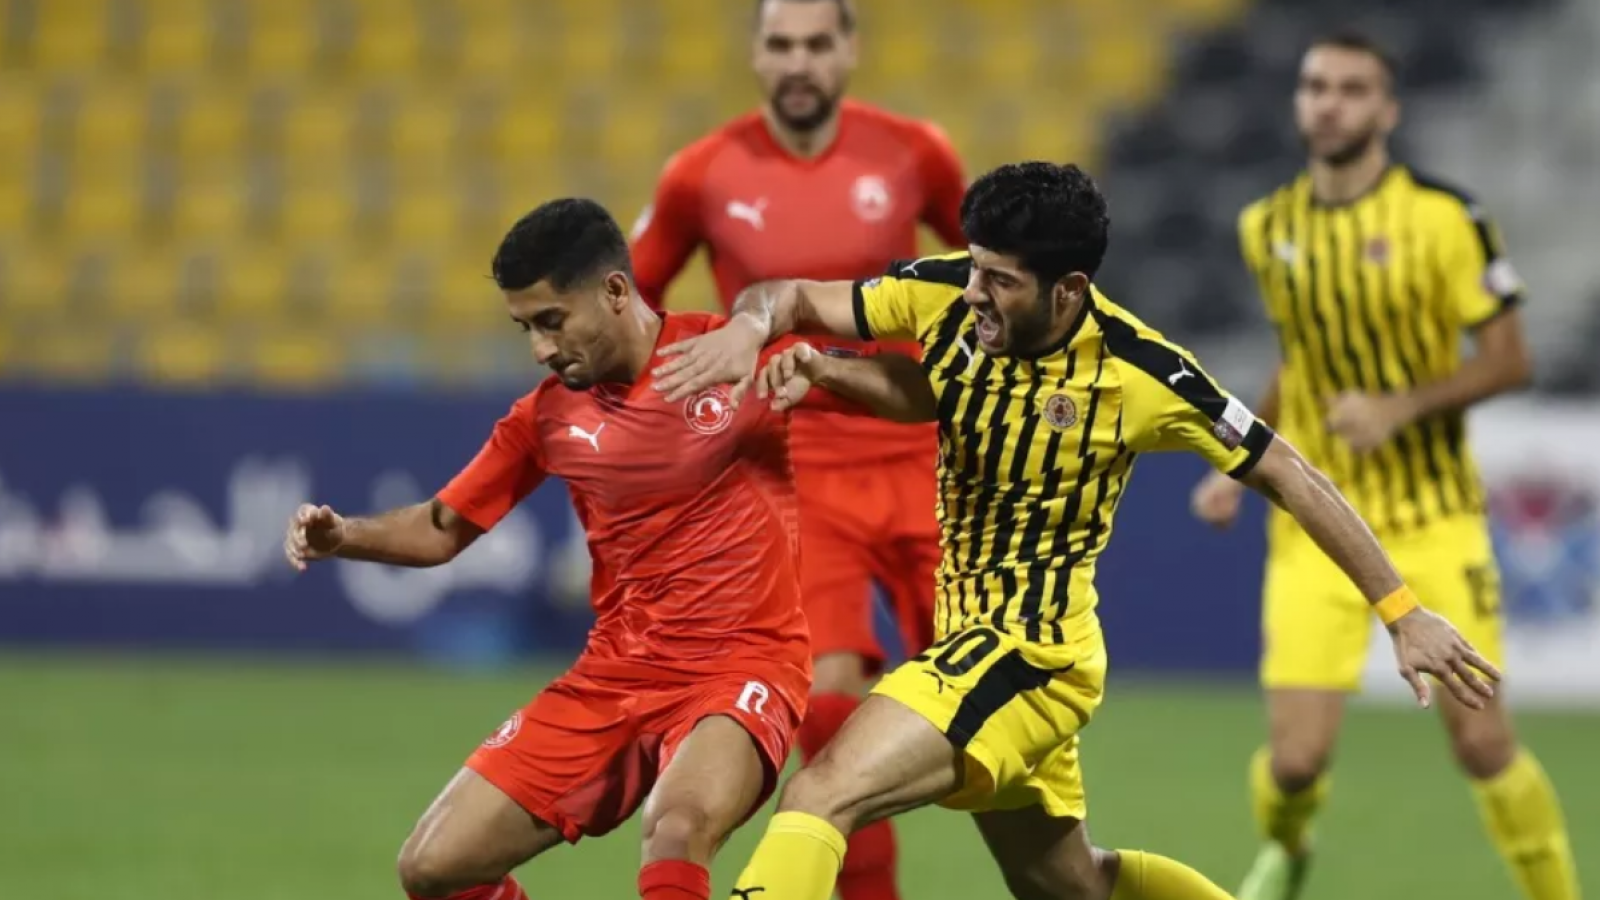 WATCH: QNB Stars League Week 11 highlights